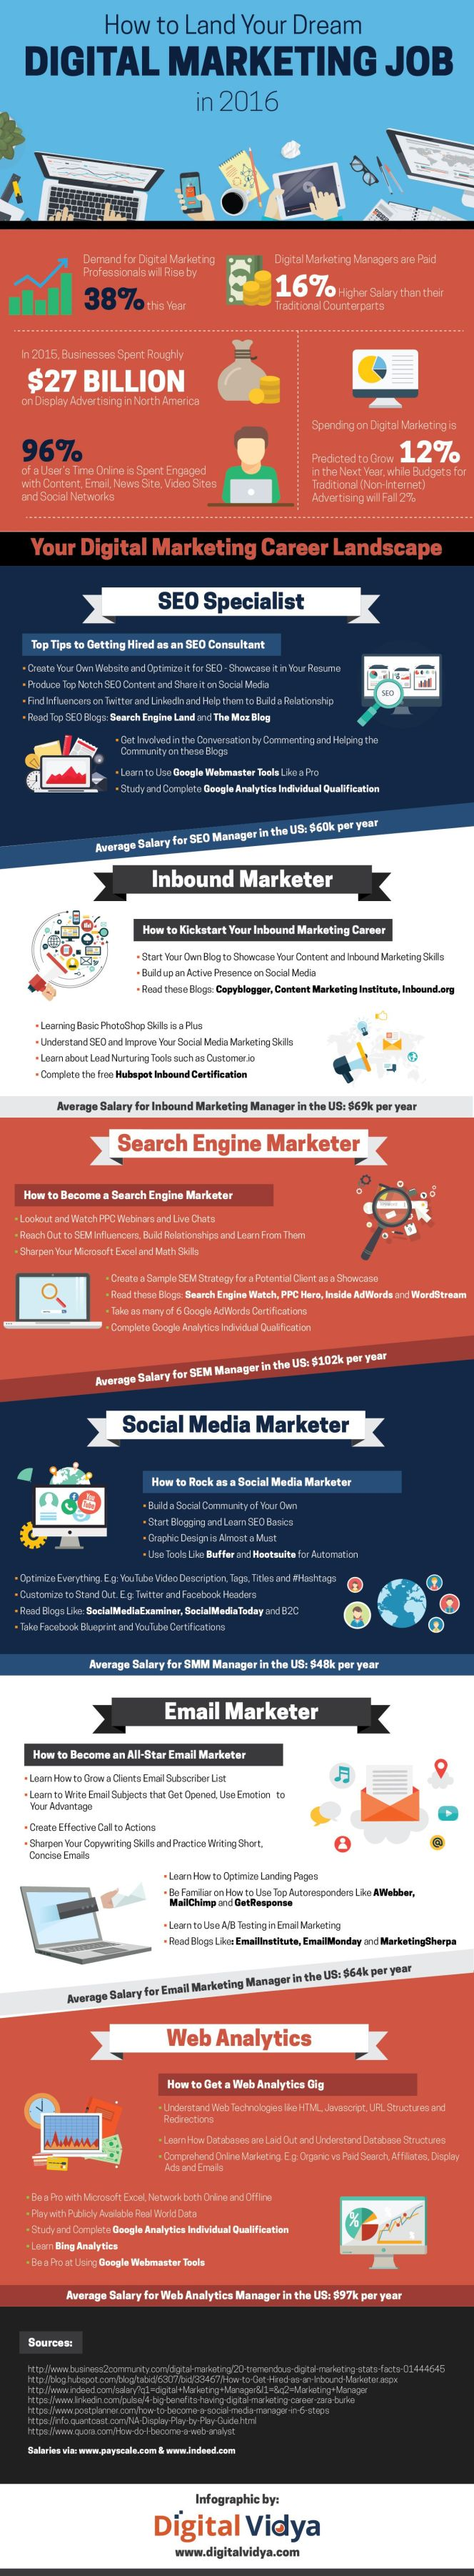 How to Land Your Dream Digital Marketing Job [Infographic]